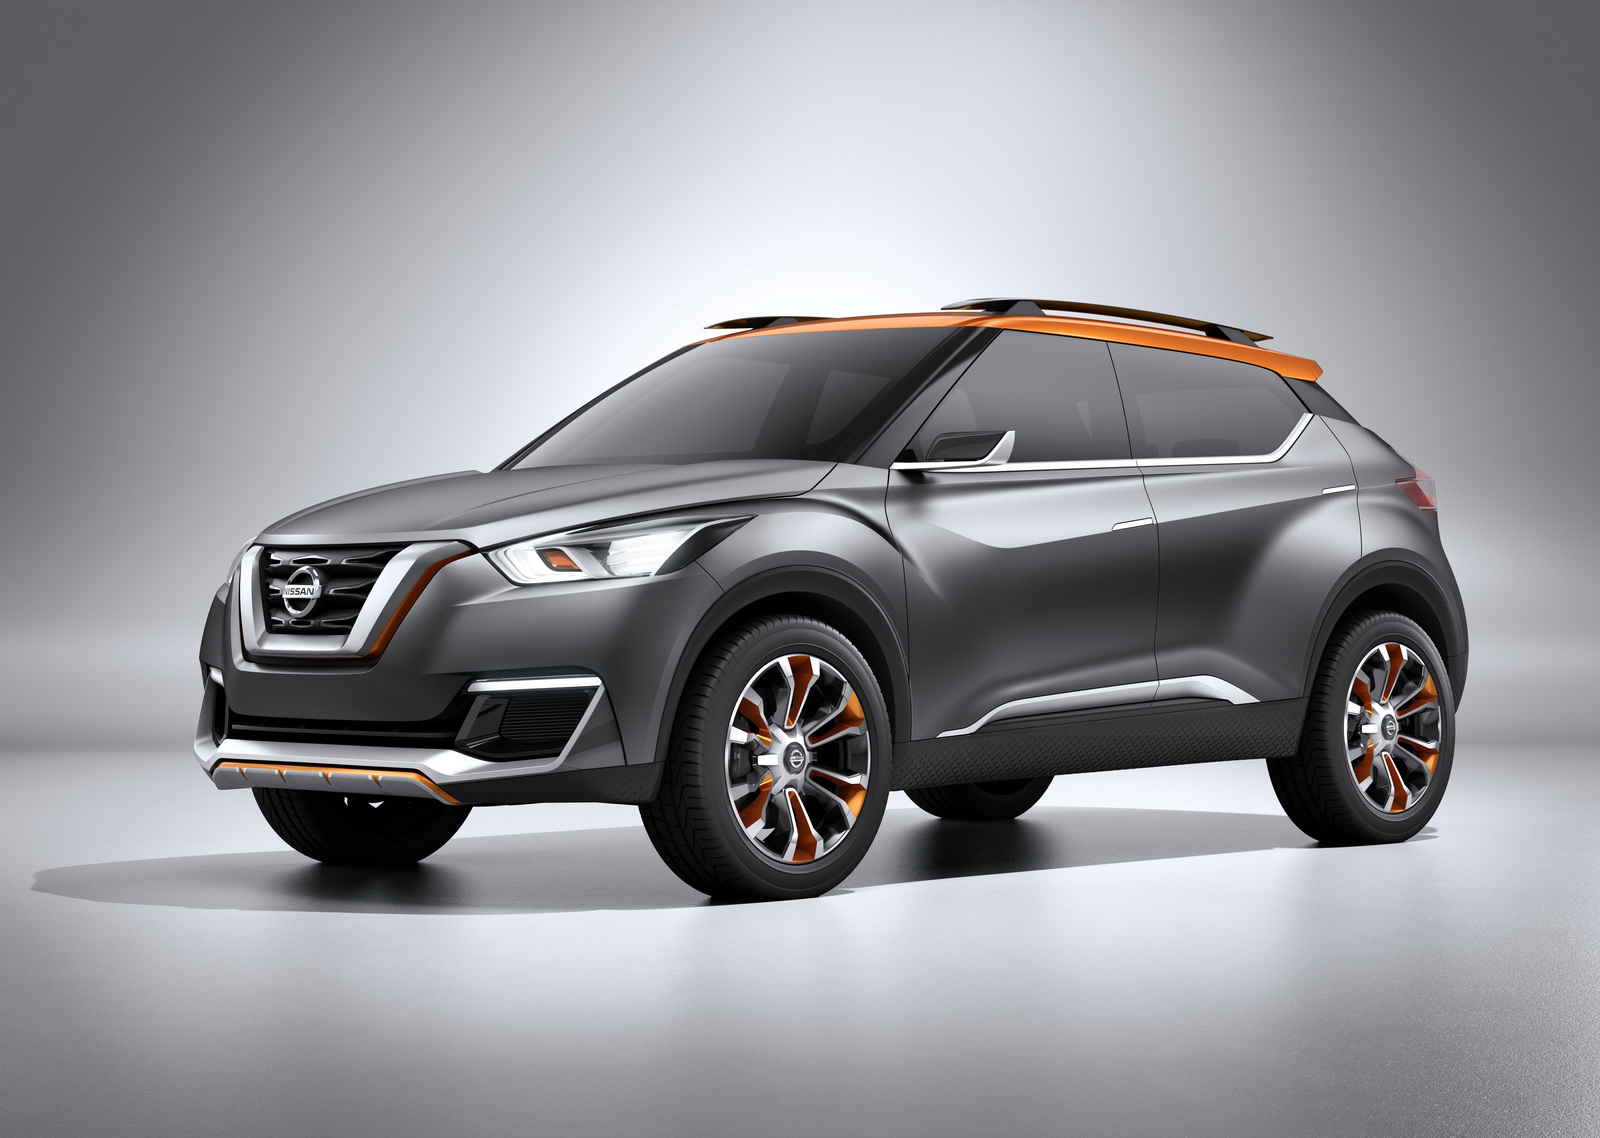 nissan kicks suv to debut in 2016 as the official car of. Black Bedroom Furniture Sets. Home Design Ideas